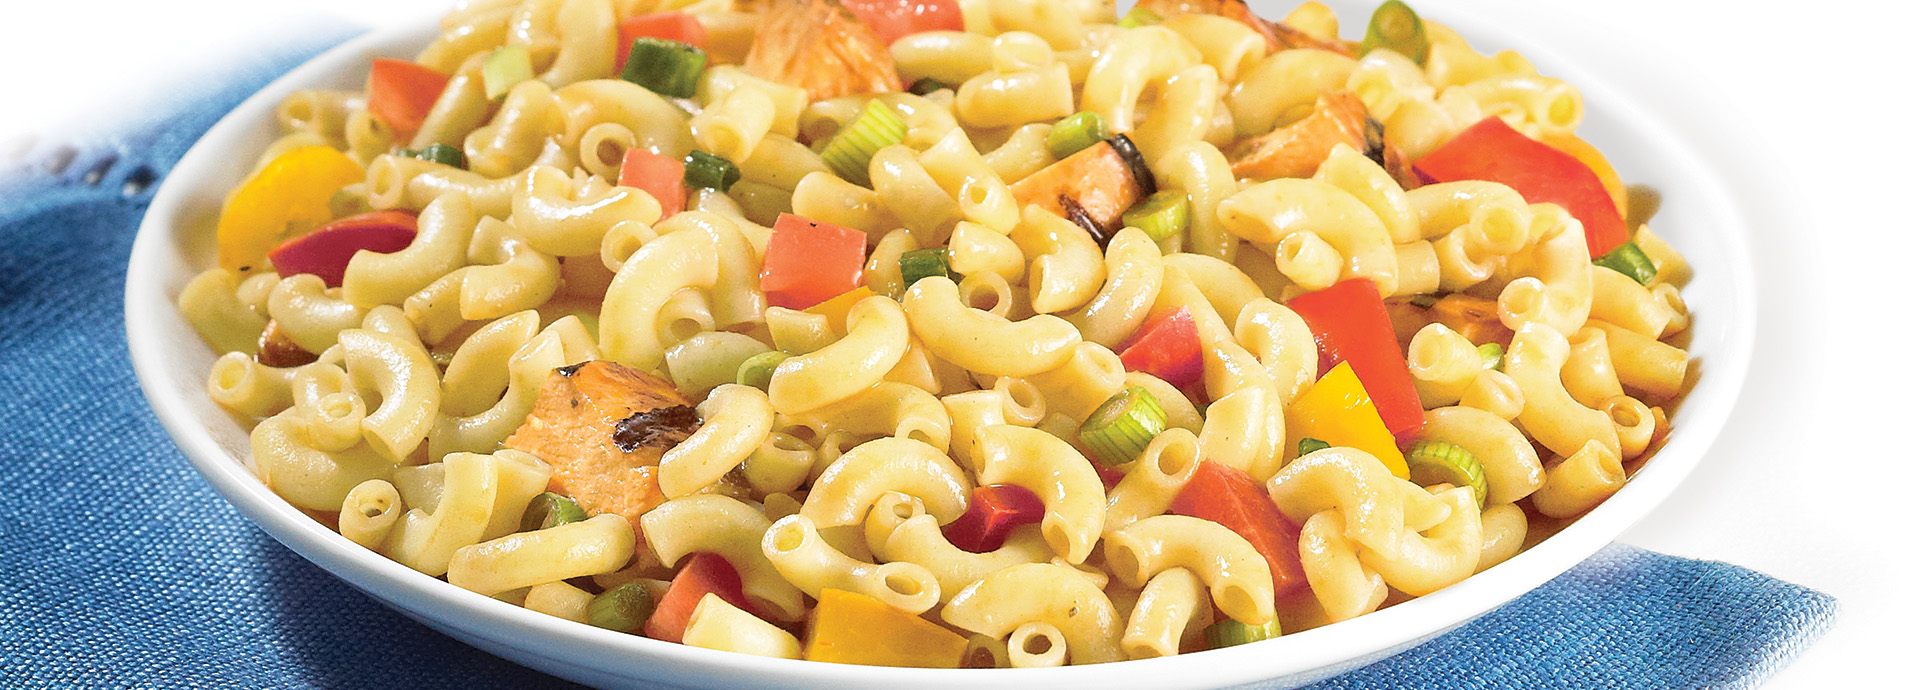 Ronzoni Barbecue Balsamic Chicken Elbow Pasta The Pasta That Calls America Home